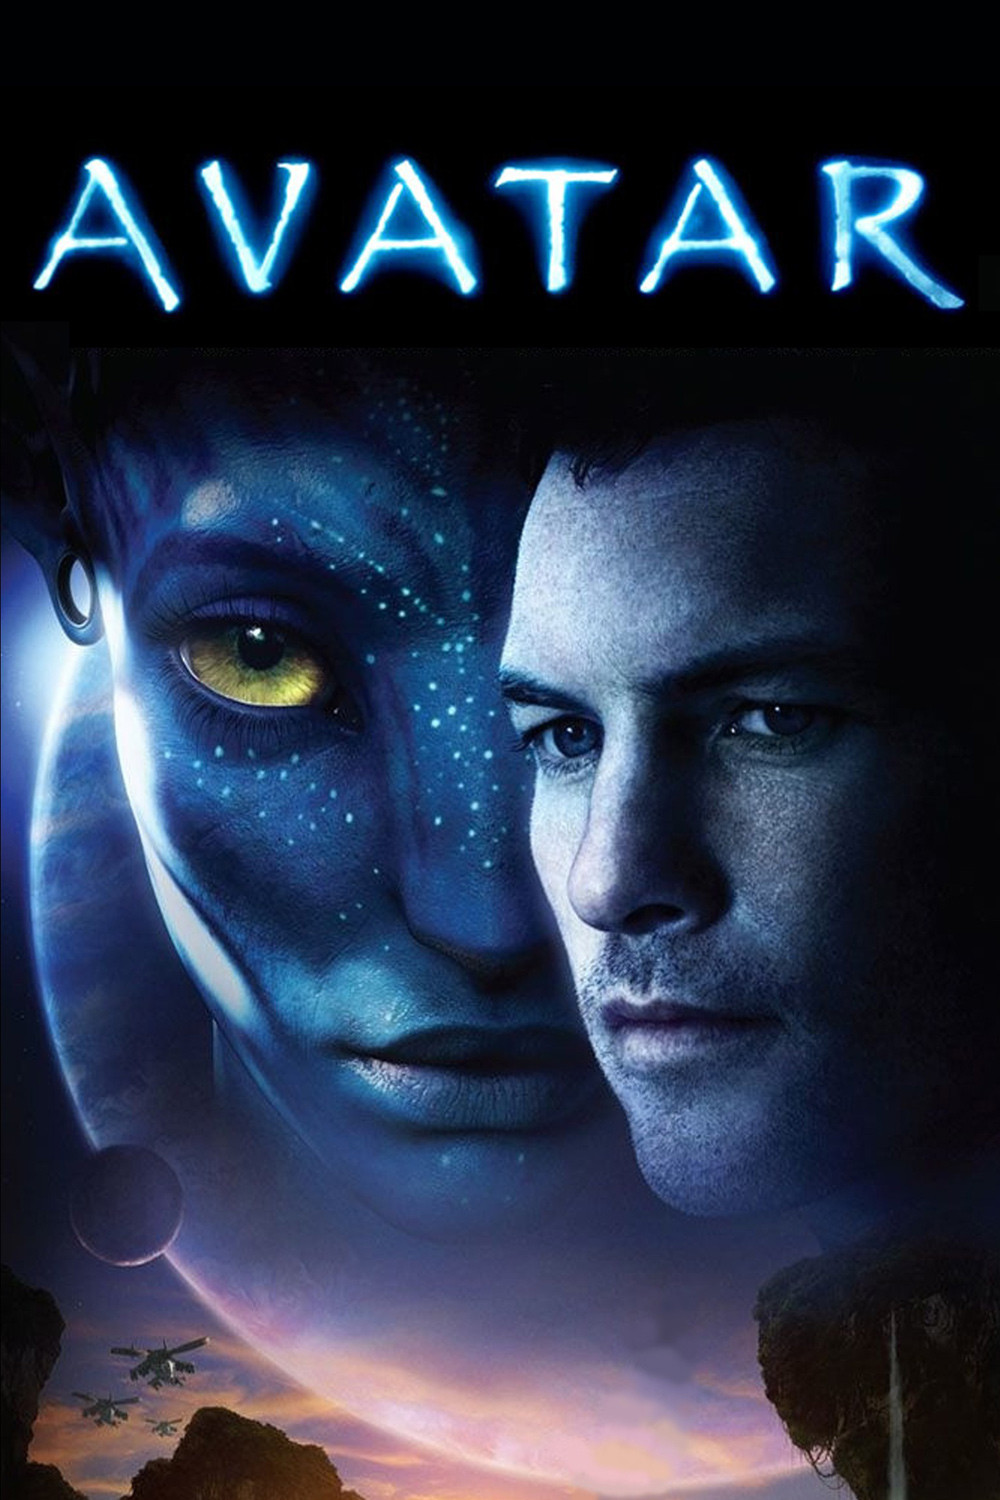 mp4 mobile movies: avatar 2009 full movie hd free download for